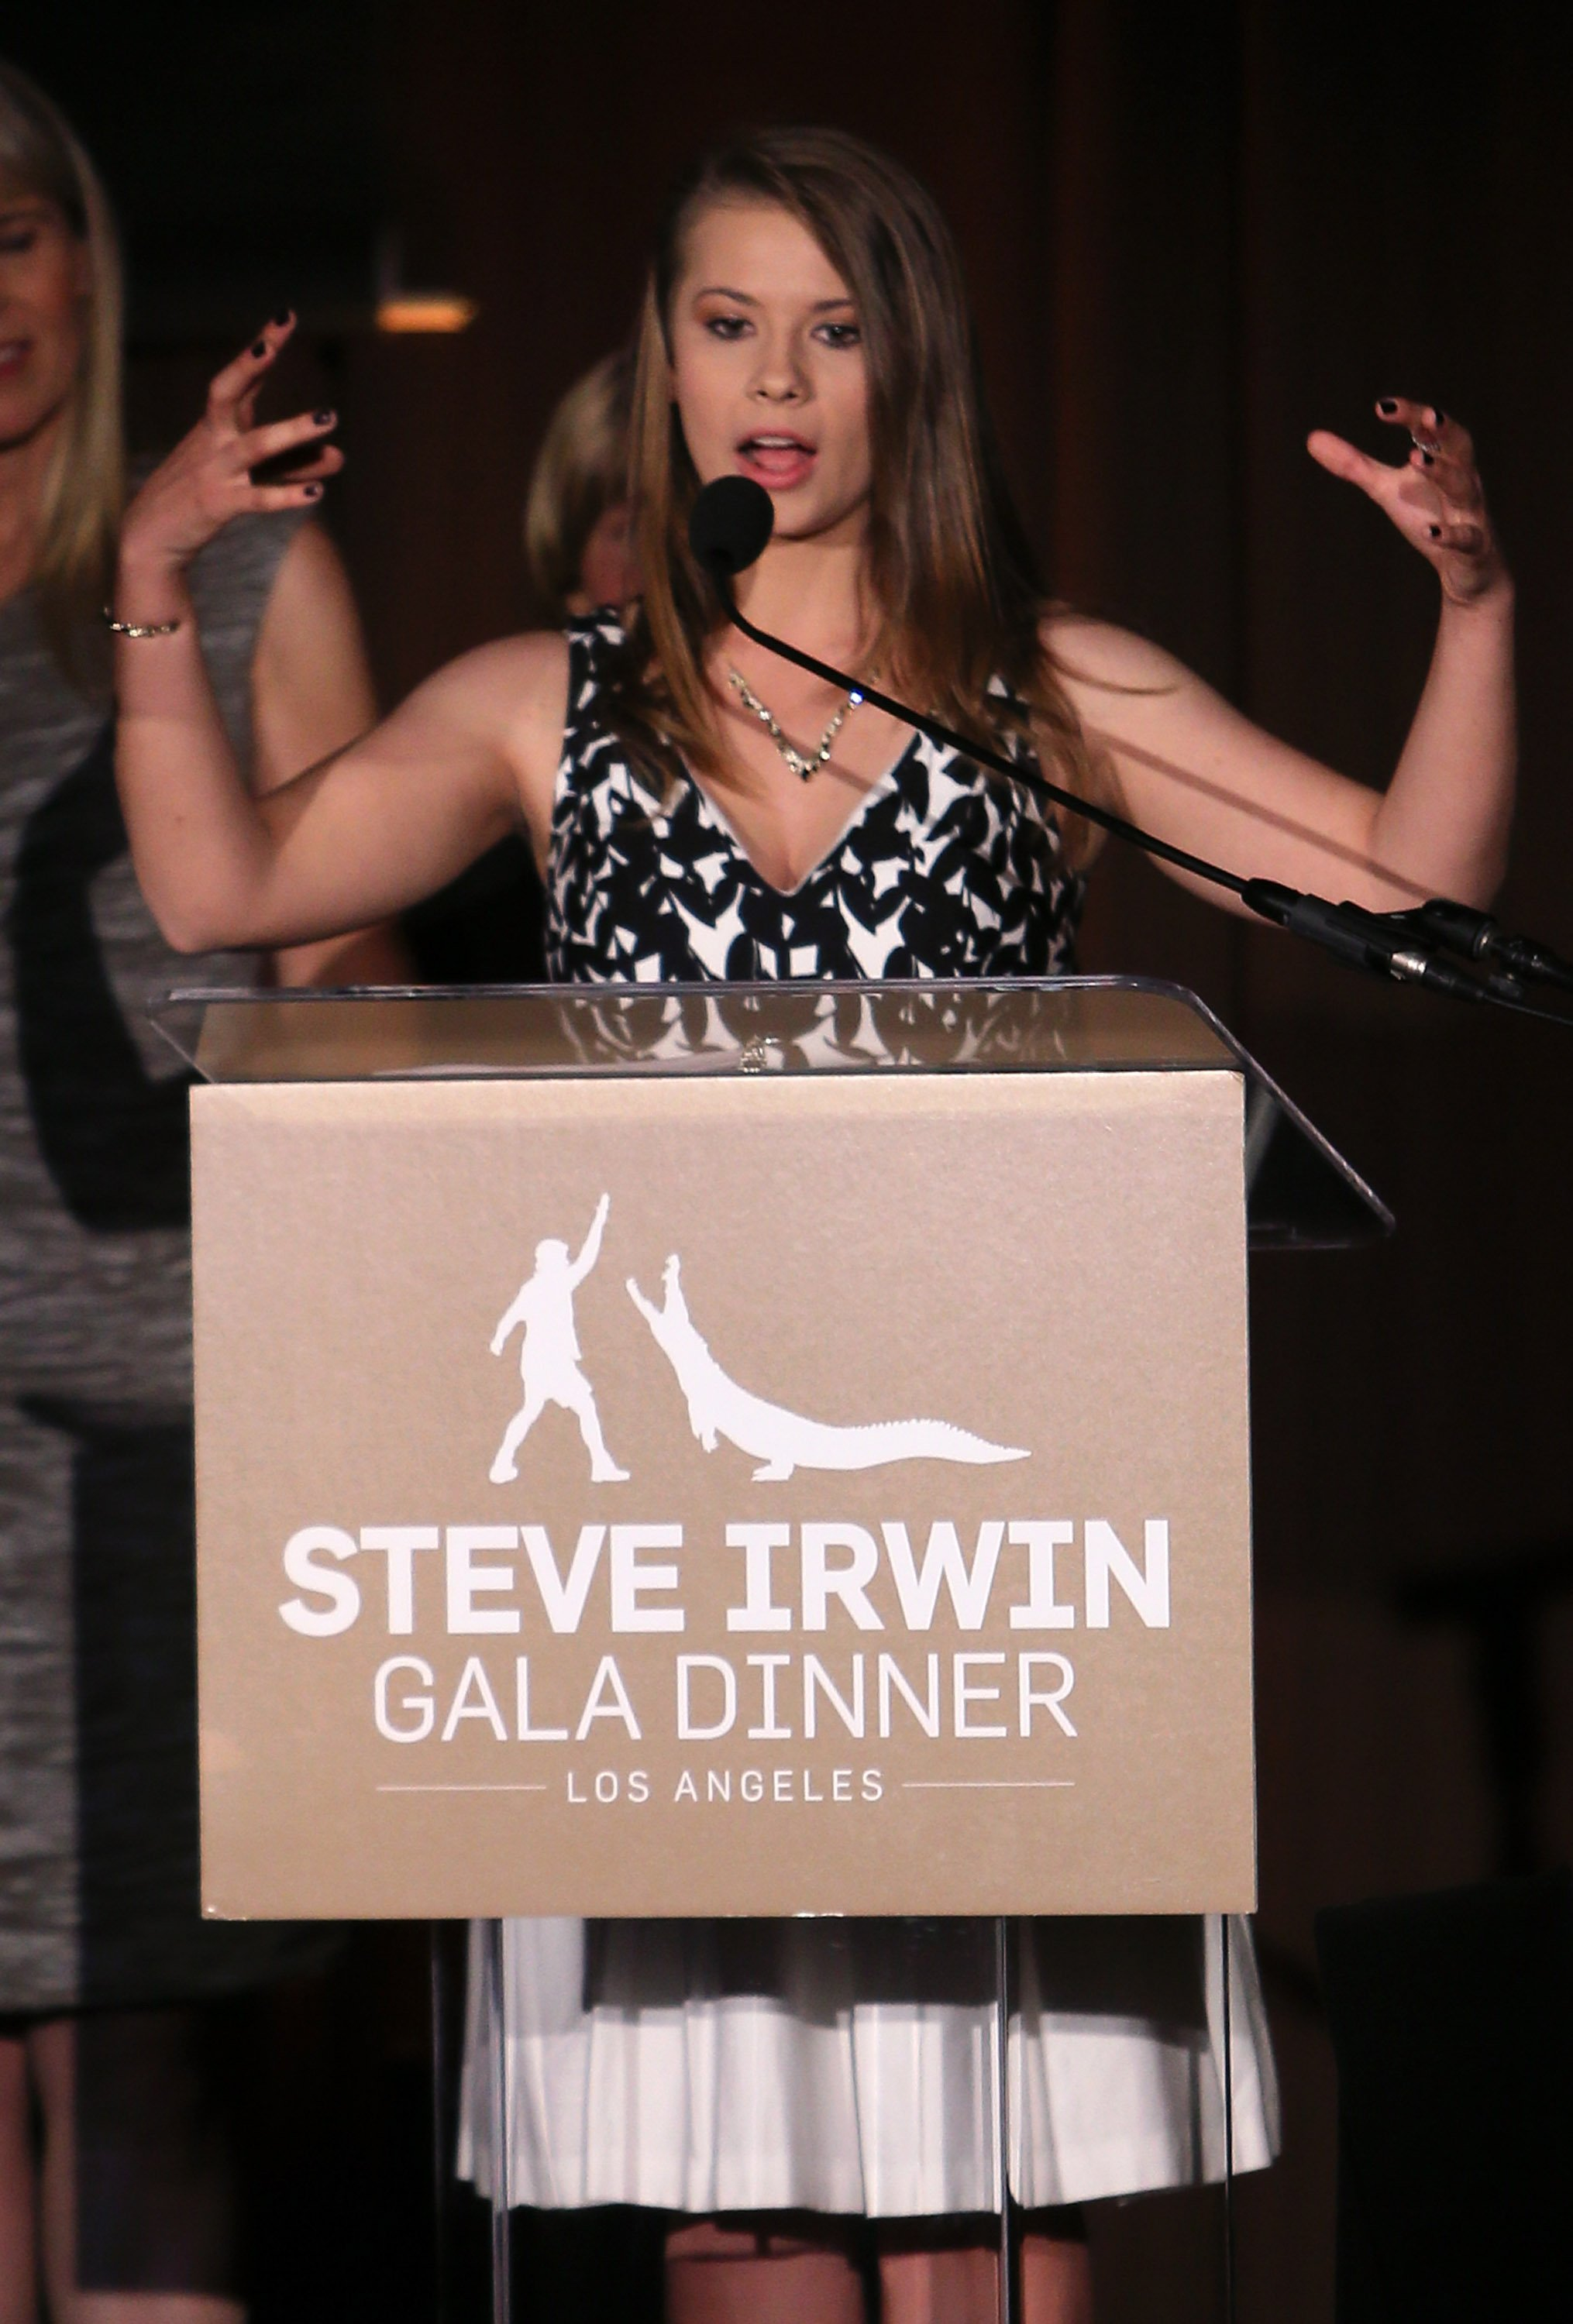 Bindi Irwin attends the Steve Irwin Gala Dinner at JW Marriott Los Angeles at L.A. LIVE on May 21, 2016 | Photo: Getty Images